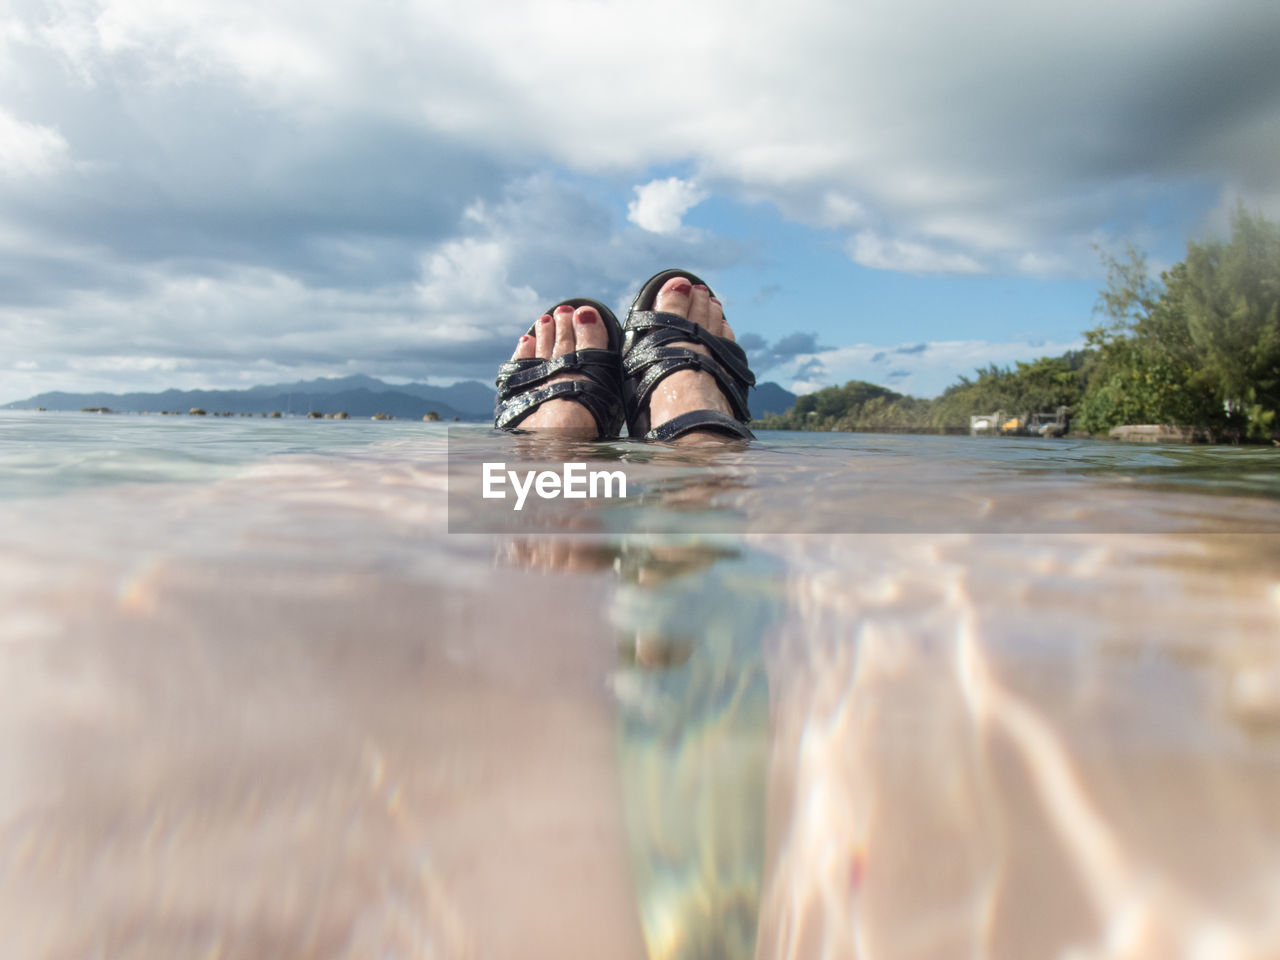 cloud - sky, low section, water, sky, human leg, day, nature, shoe, real people, outdoors, beauty in nature, one person, friendship, people